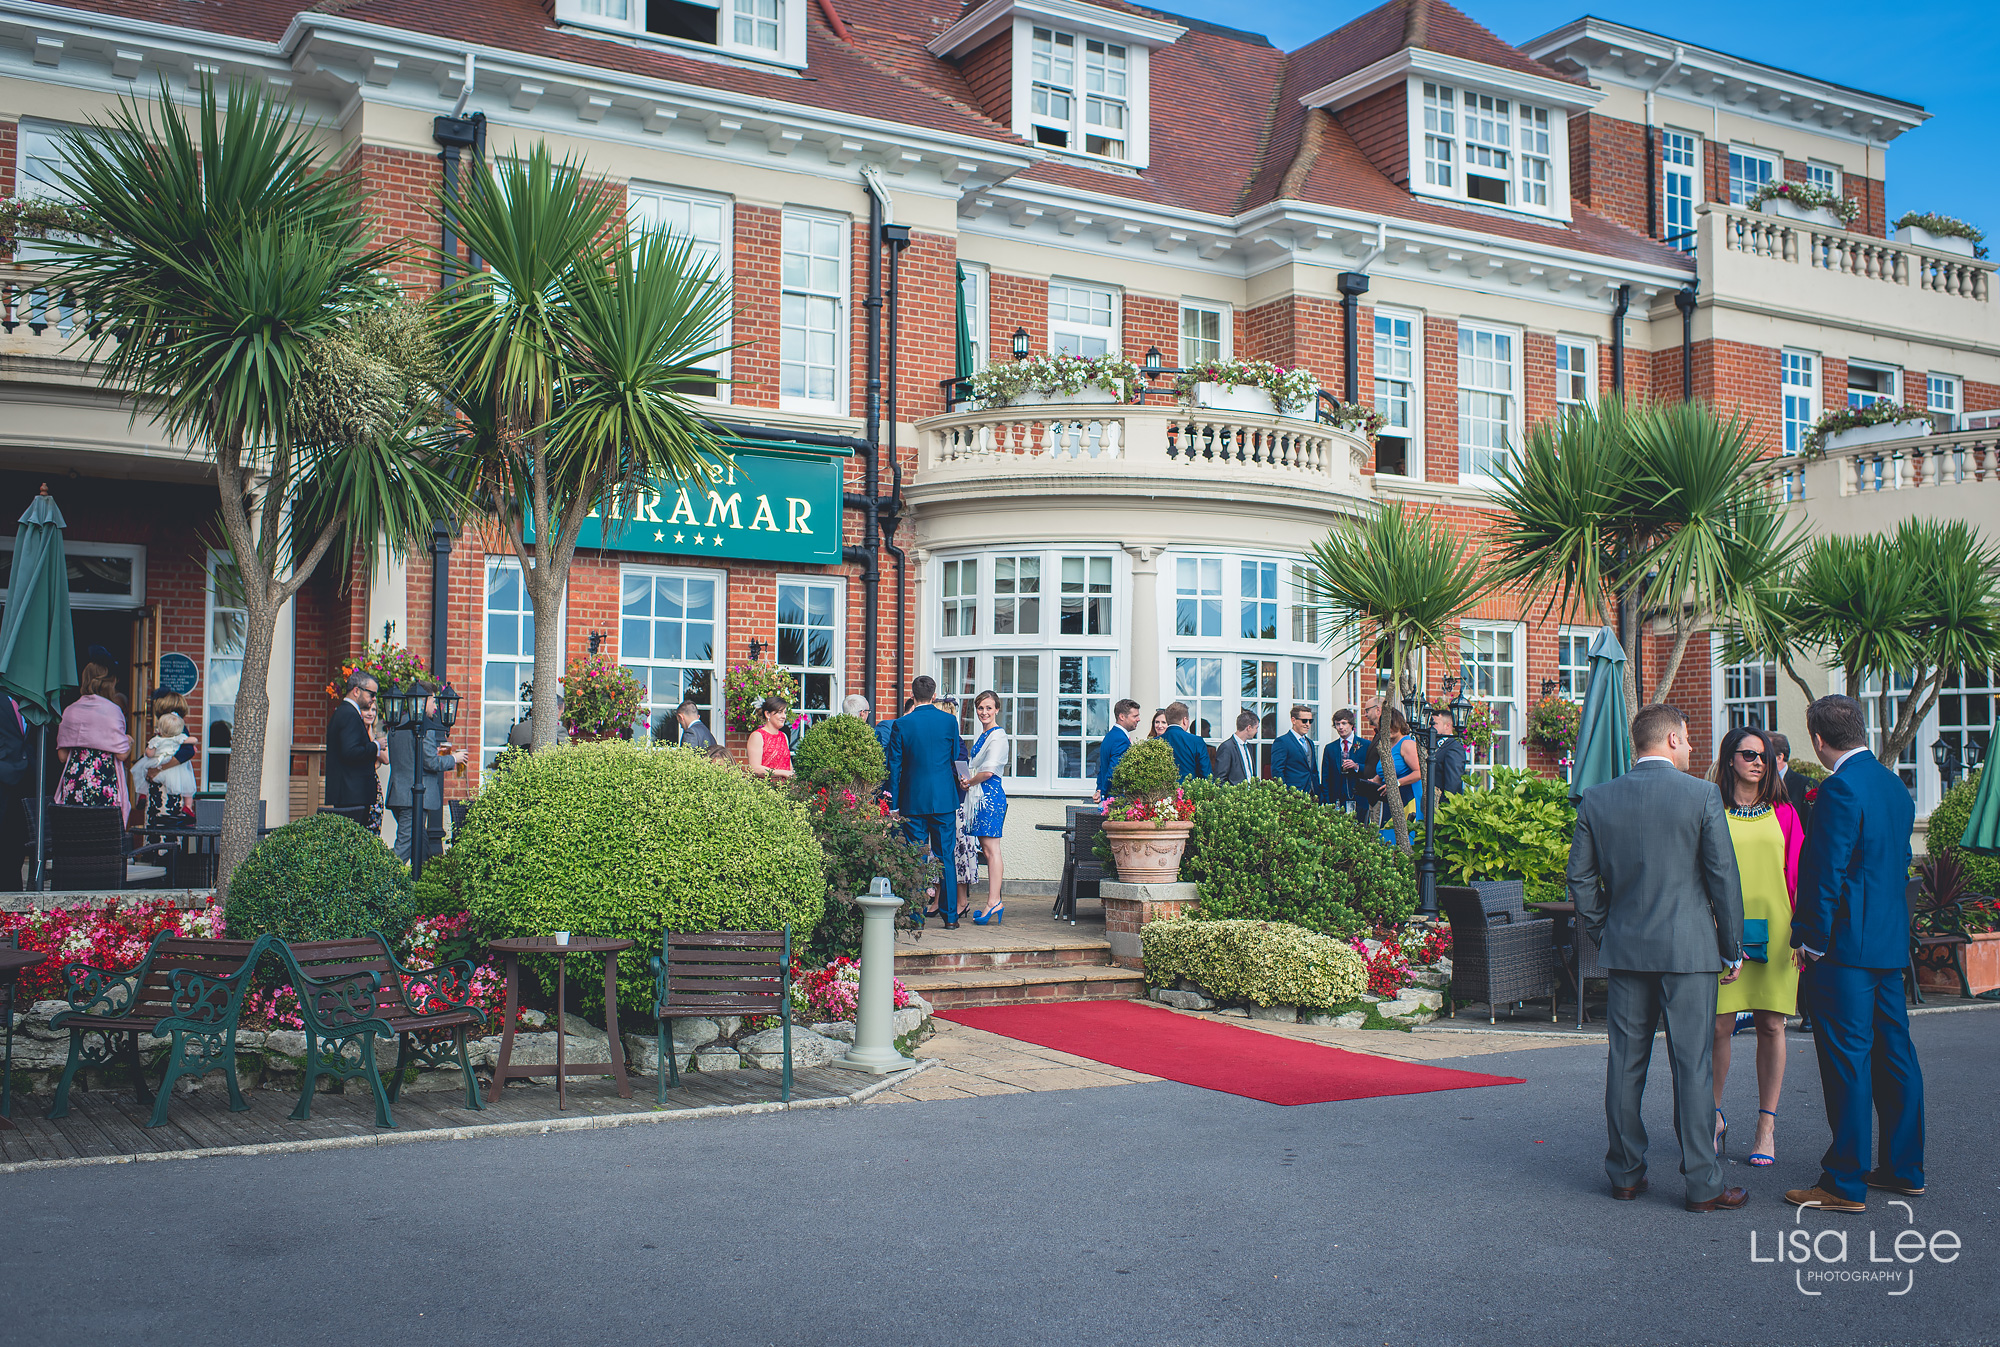 Lisa-Lee-Creative-Documentary-Wedding-Photography-Miramar-Hotel-Dorset-2.jpg